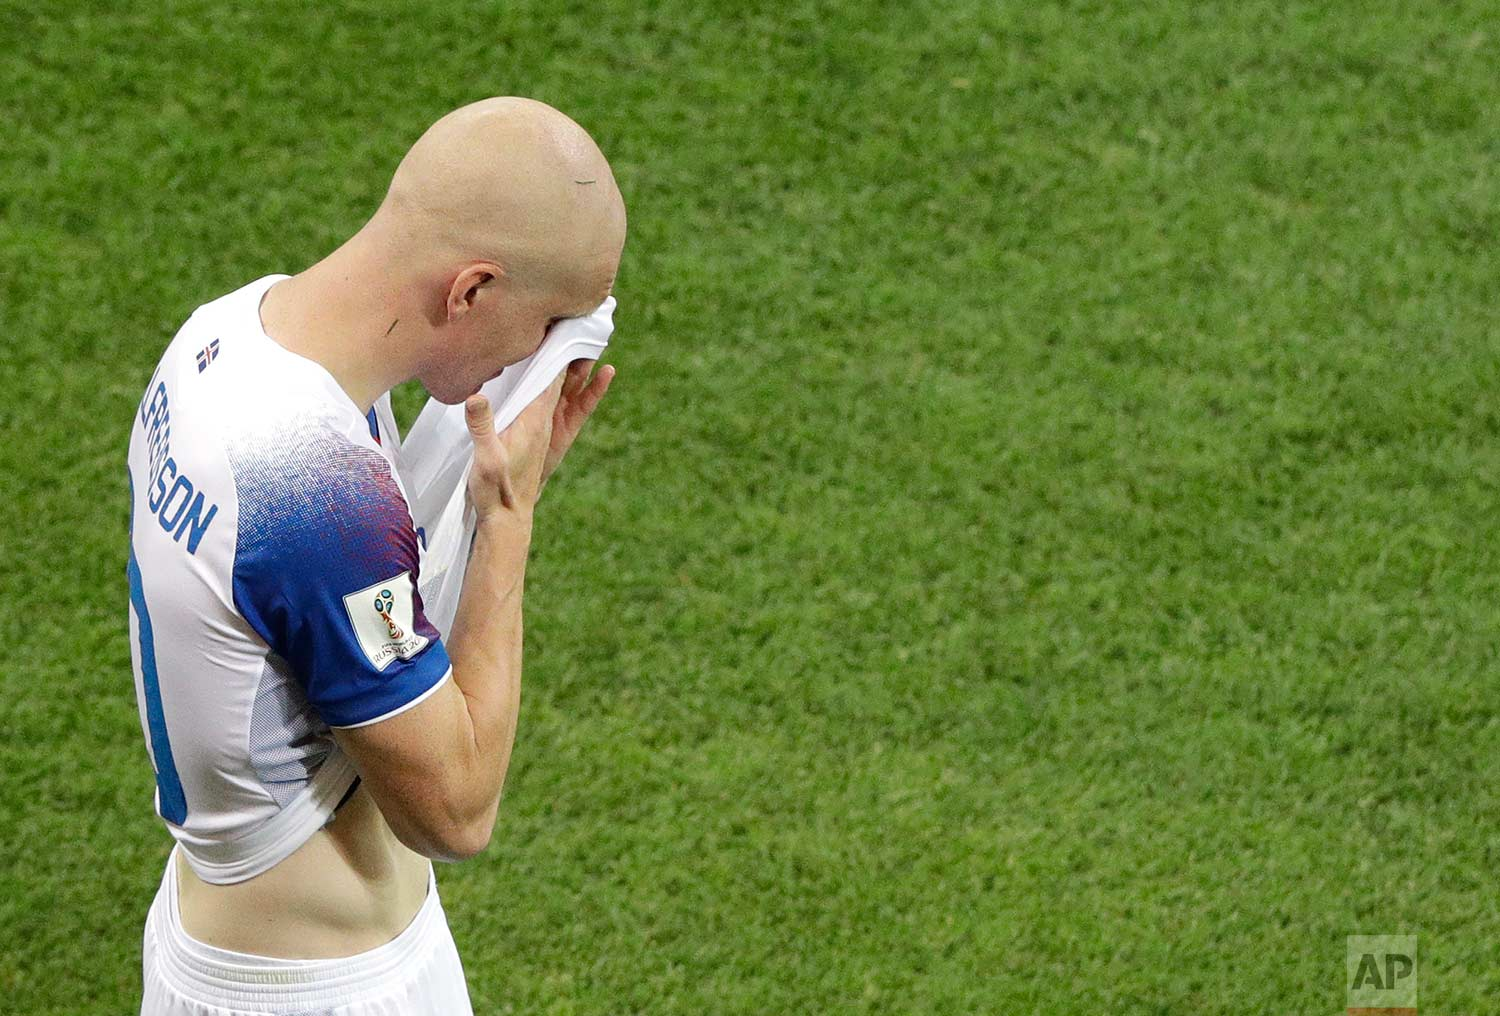 Iceland's Emil Hallfredsson wipes his face at the end of the group D match between Iceland and Croatia, at the 2018 soccer World Cup in the Rostov Arena in Rostov-on-Don, Russia, Tuesday, June 26, 2018. (AP Photo/Mark Baker)